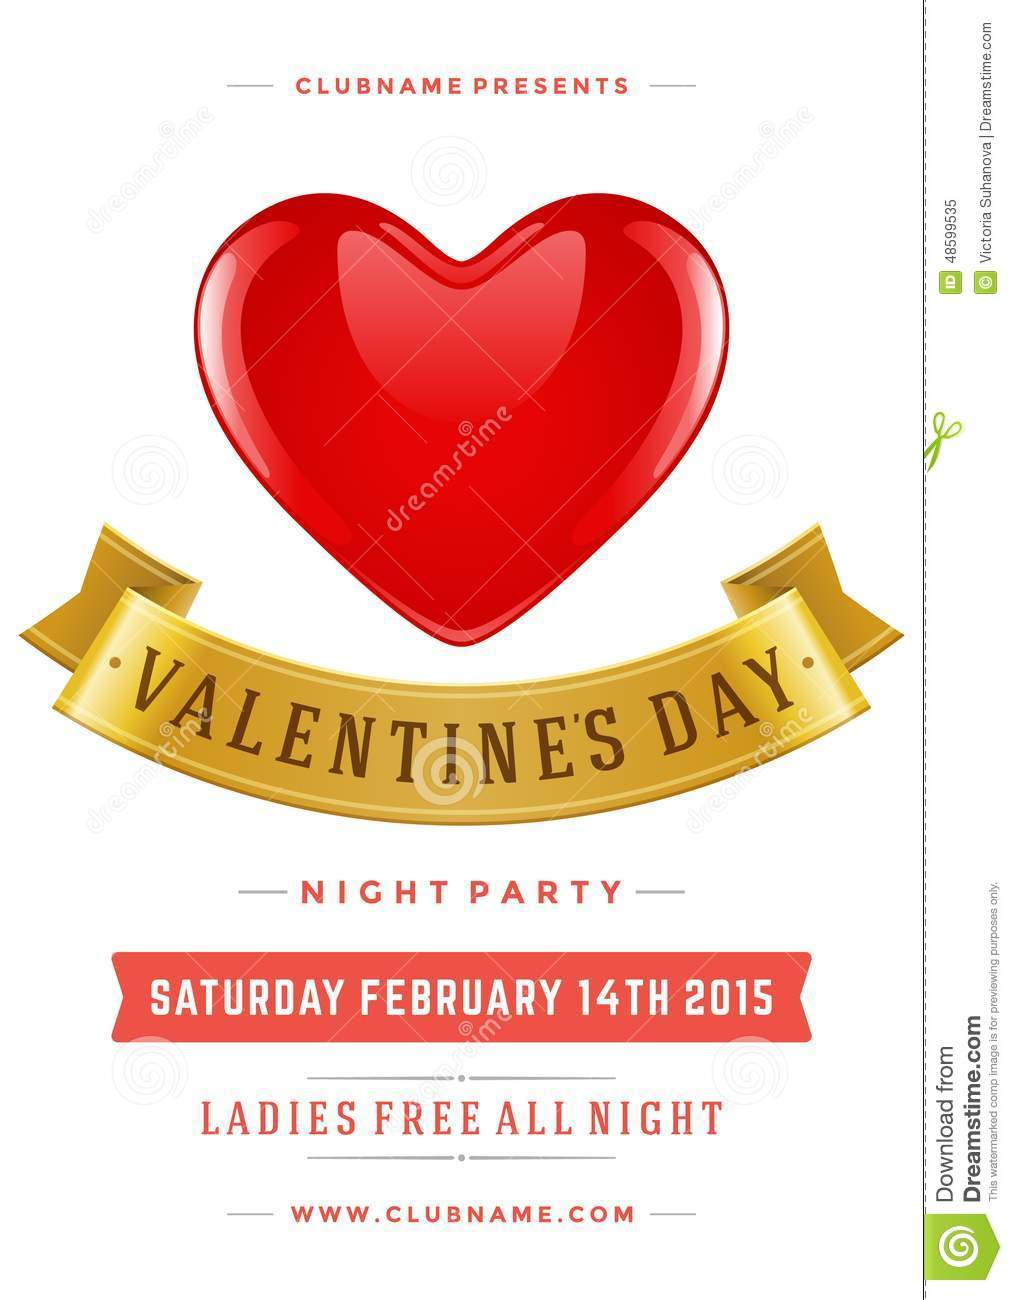 happy valentines day party poster design template stock illustration illustration 48599535. Black Bedroom Furniture Sets. Home Design Ideas